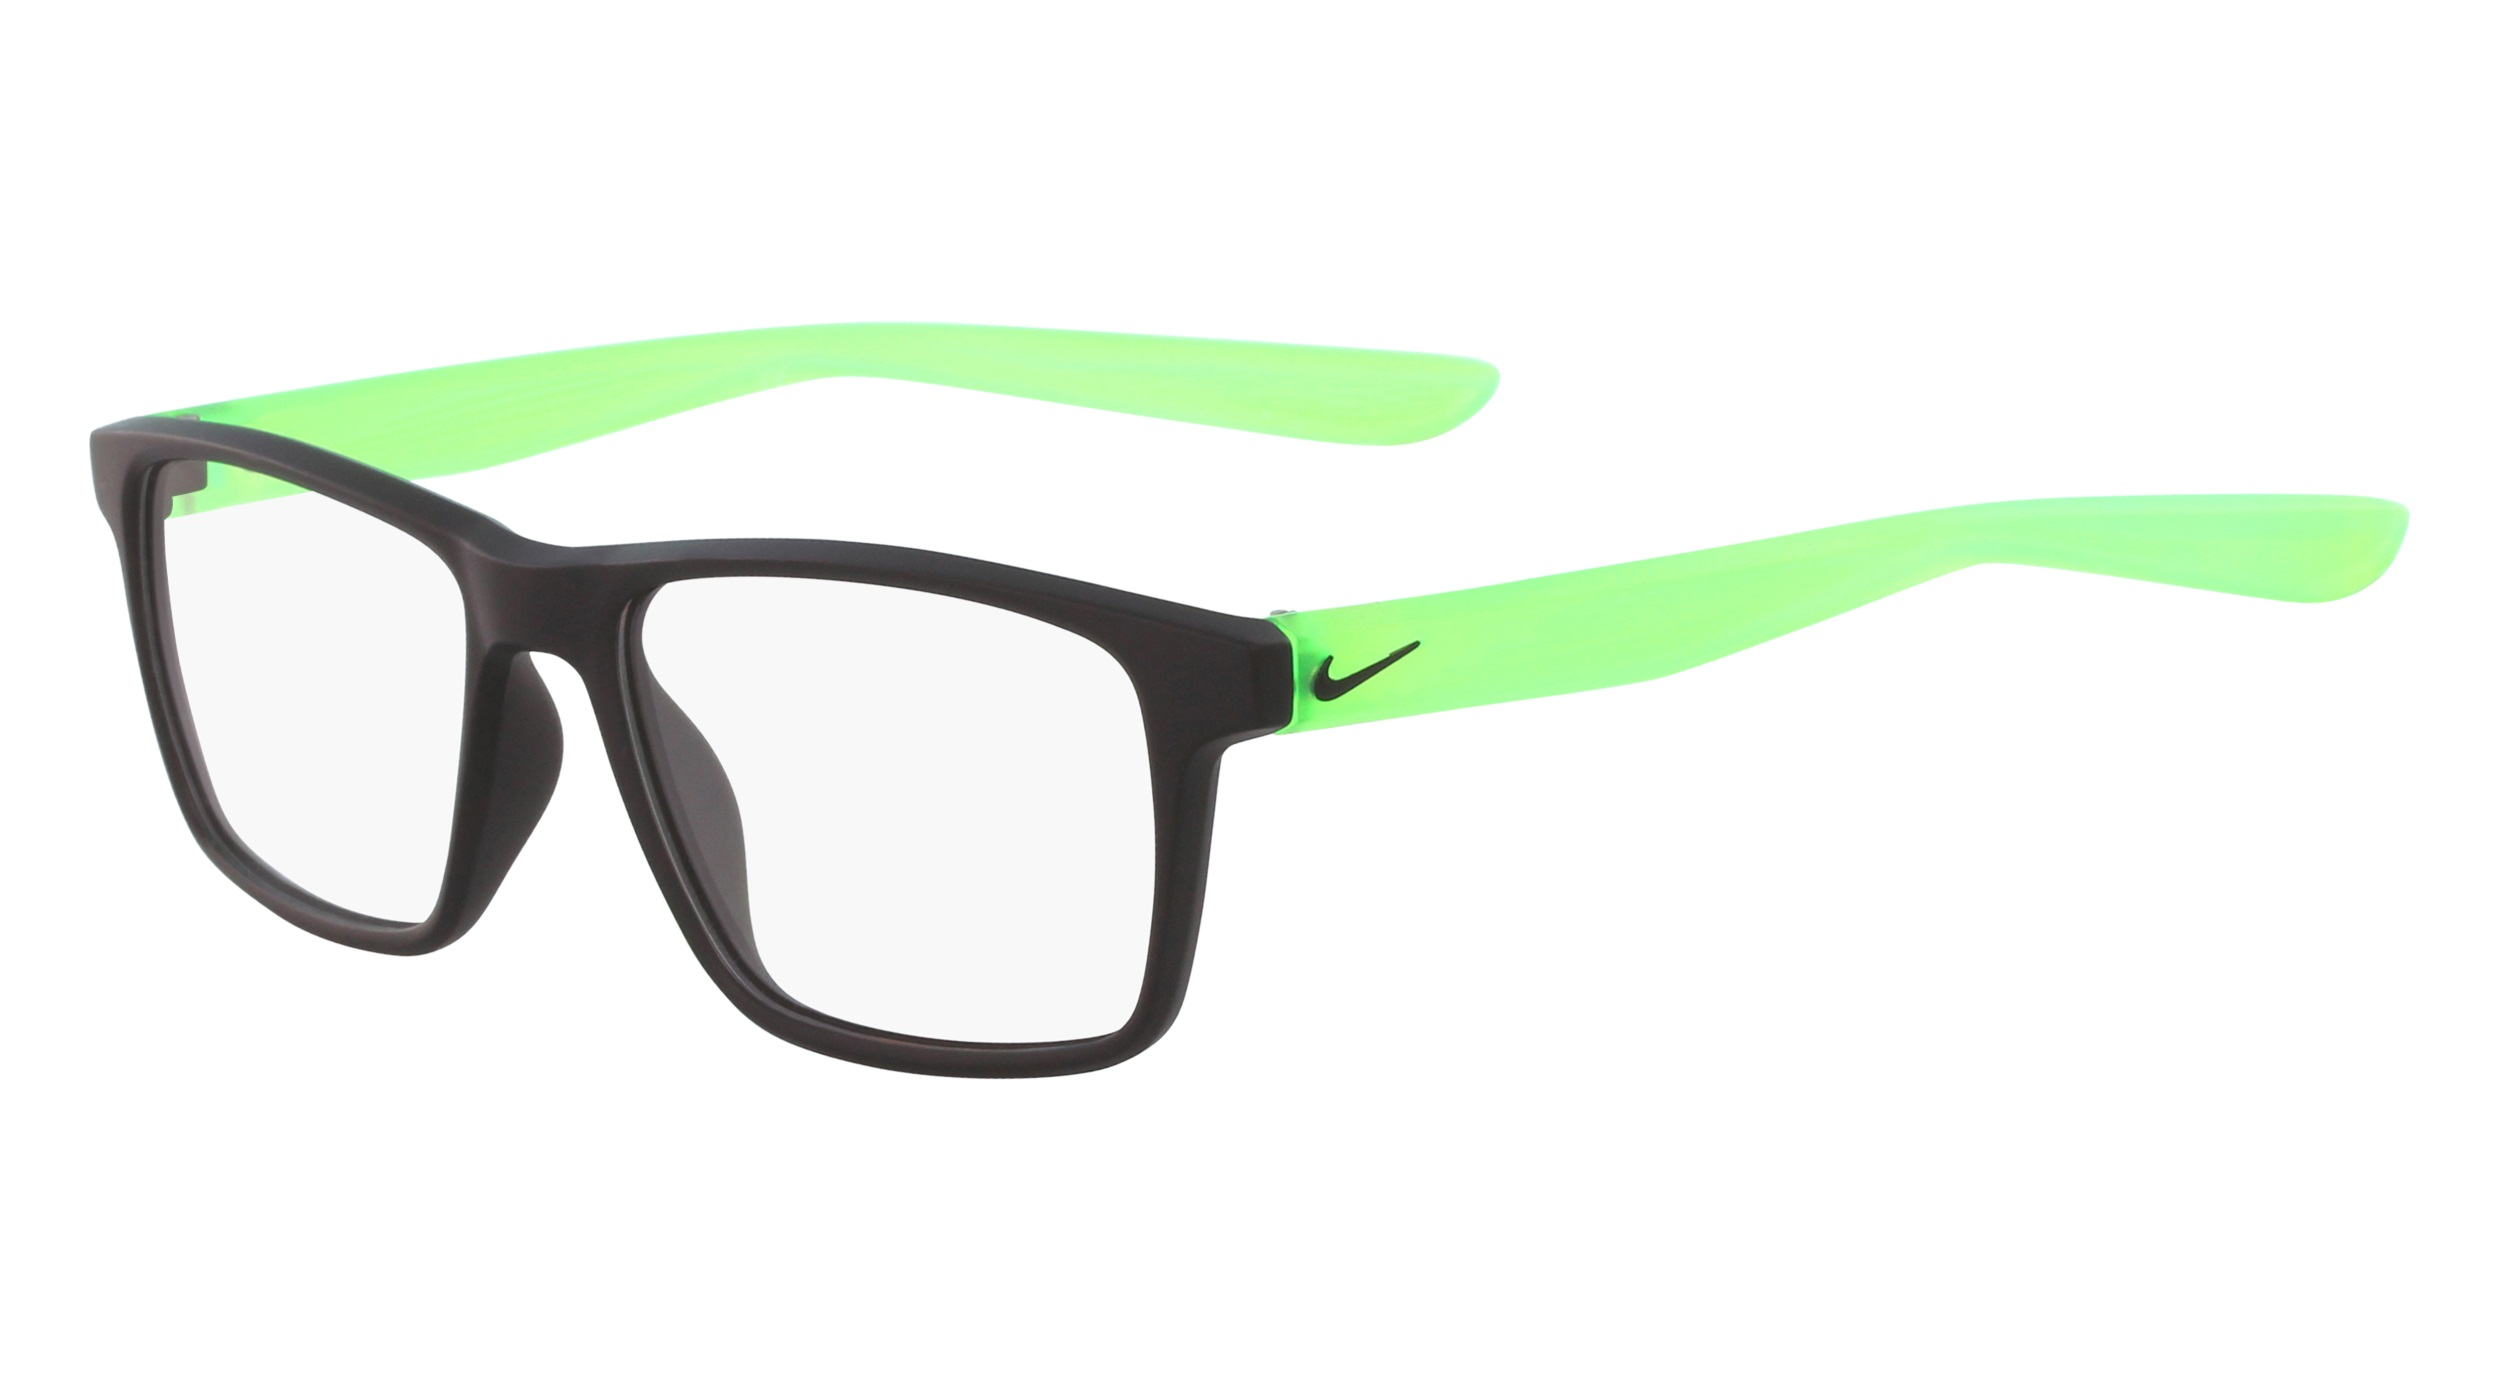 e6daa0d1235f Nike 5002-003 Kids Eyeglasses Matte Black Green Nike5002-003 - Optiwow